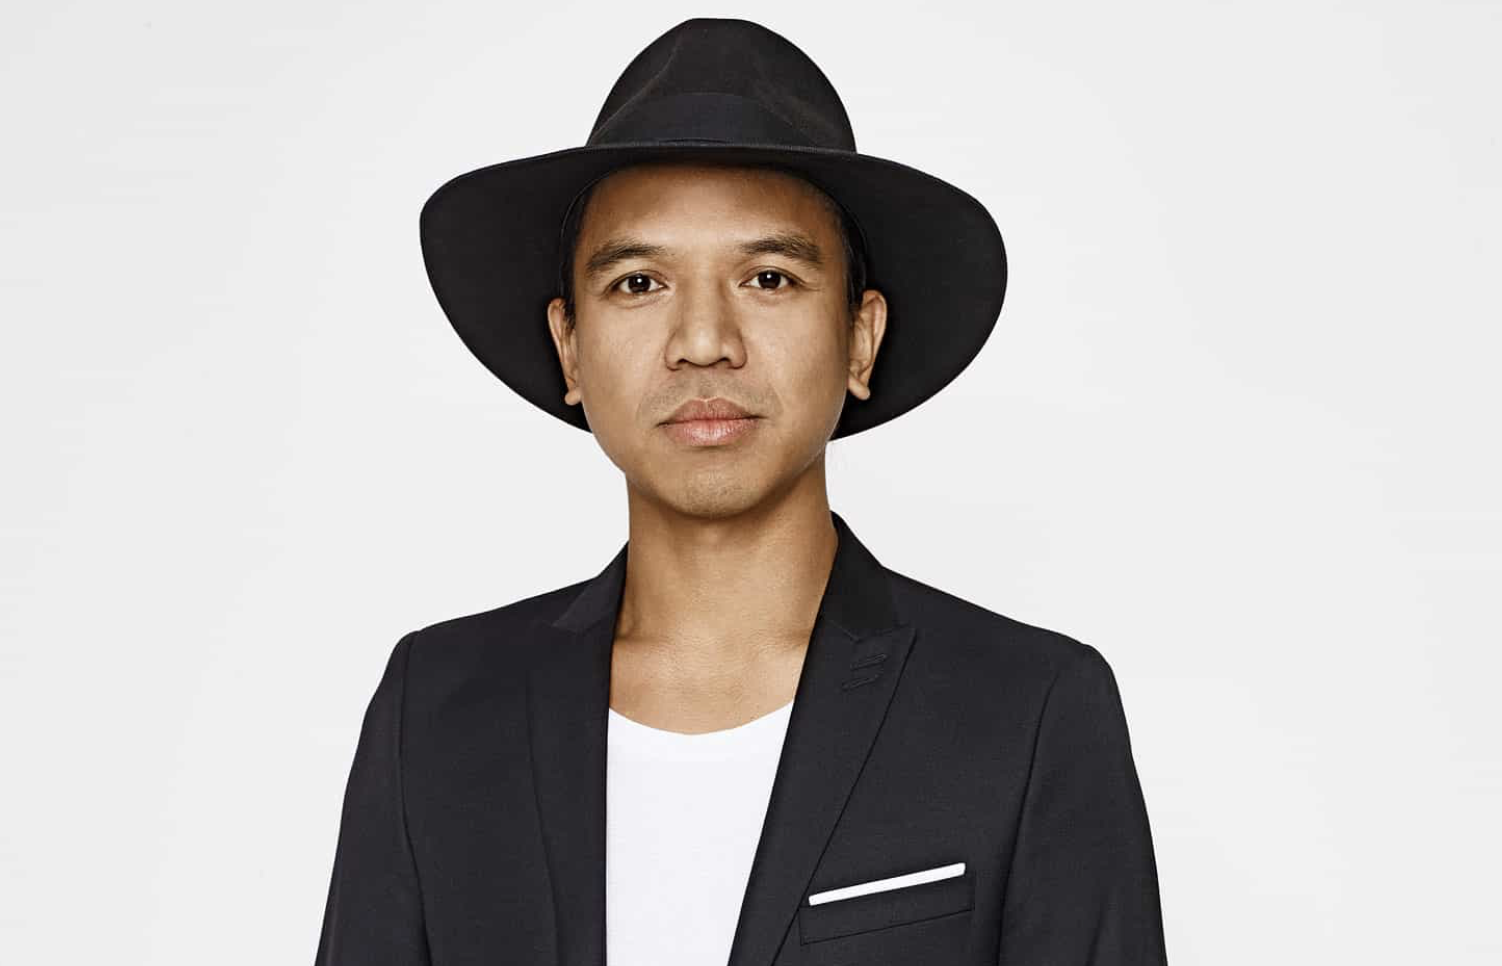 REVOLVE'S MICHAEL MENTE ON THE FASHION BRAND'S BOOMING SUCCESS -